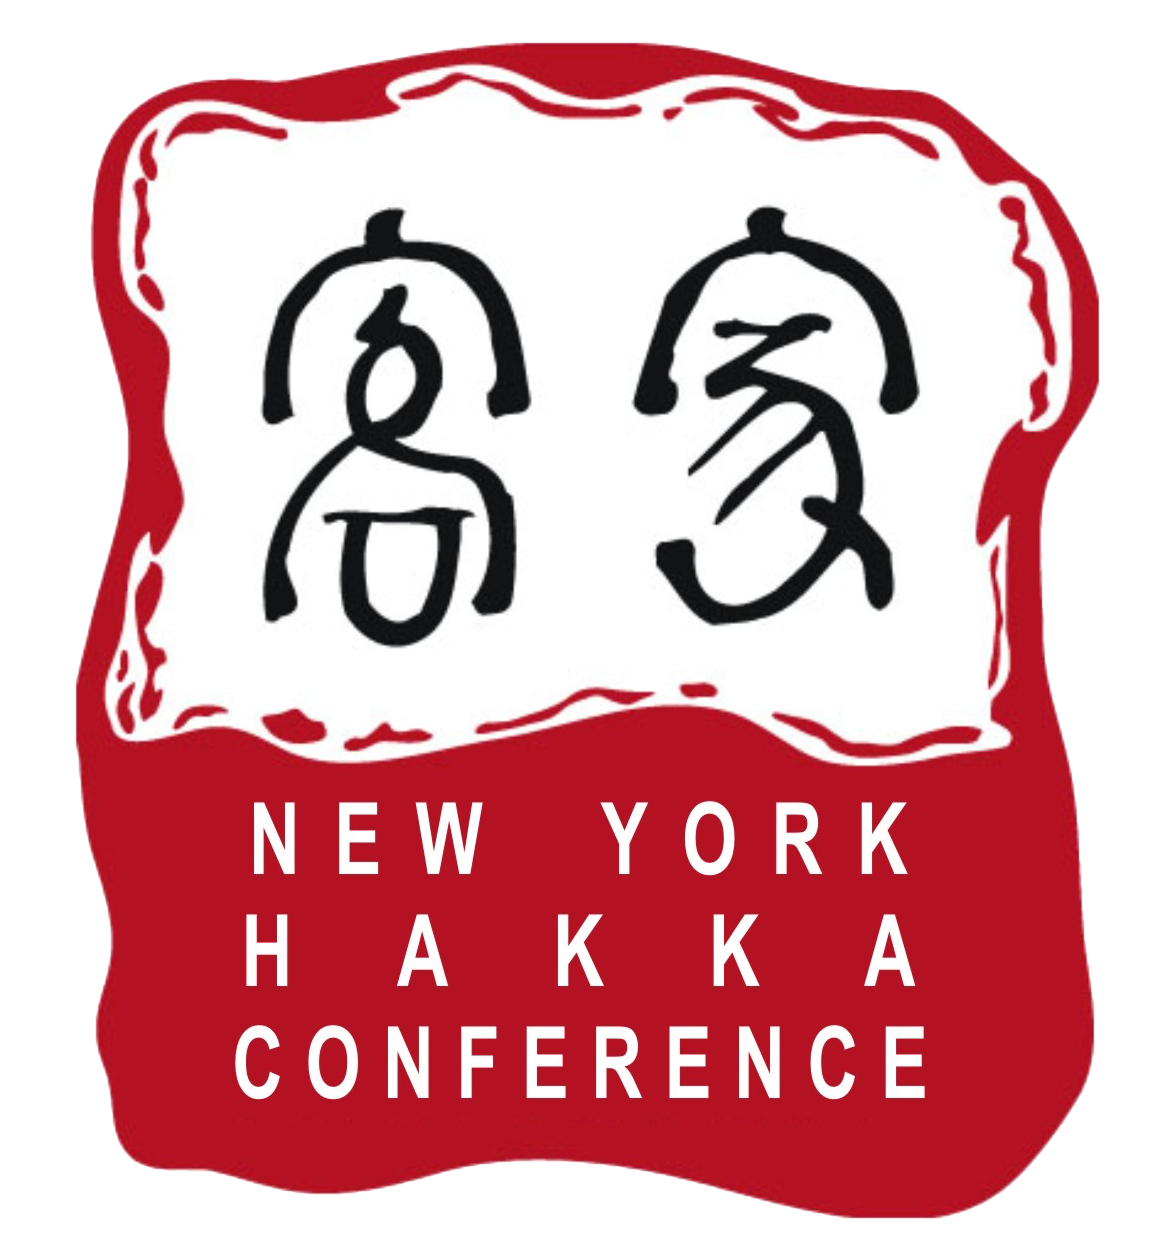 NEW YORK HAKKA CONFERENCE 2017